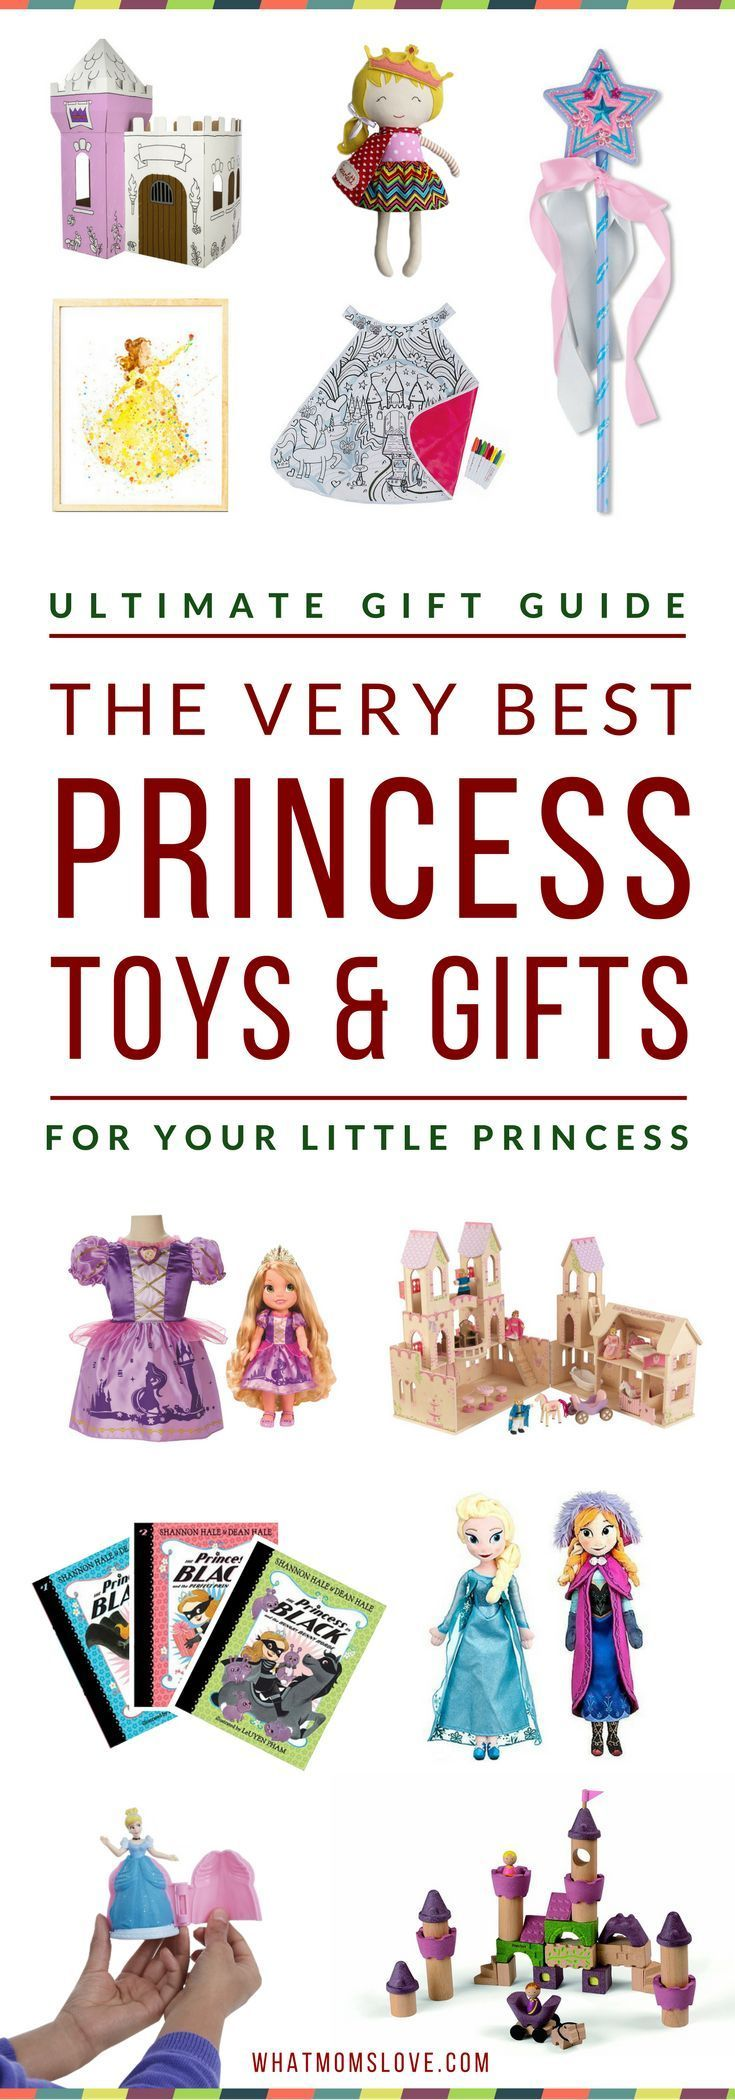 Best Princess Toys & Gifts for Girls | Gift Guide For Toddlers to Tweens | Gift Ideas For Disney Princess Lovers | Best Toys For 4 Year Old Girls | Best Gifts For 5 Year Old Girls & up | Click to access the top picks, or pin for later | from What Moms Love